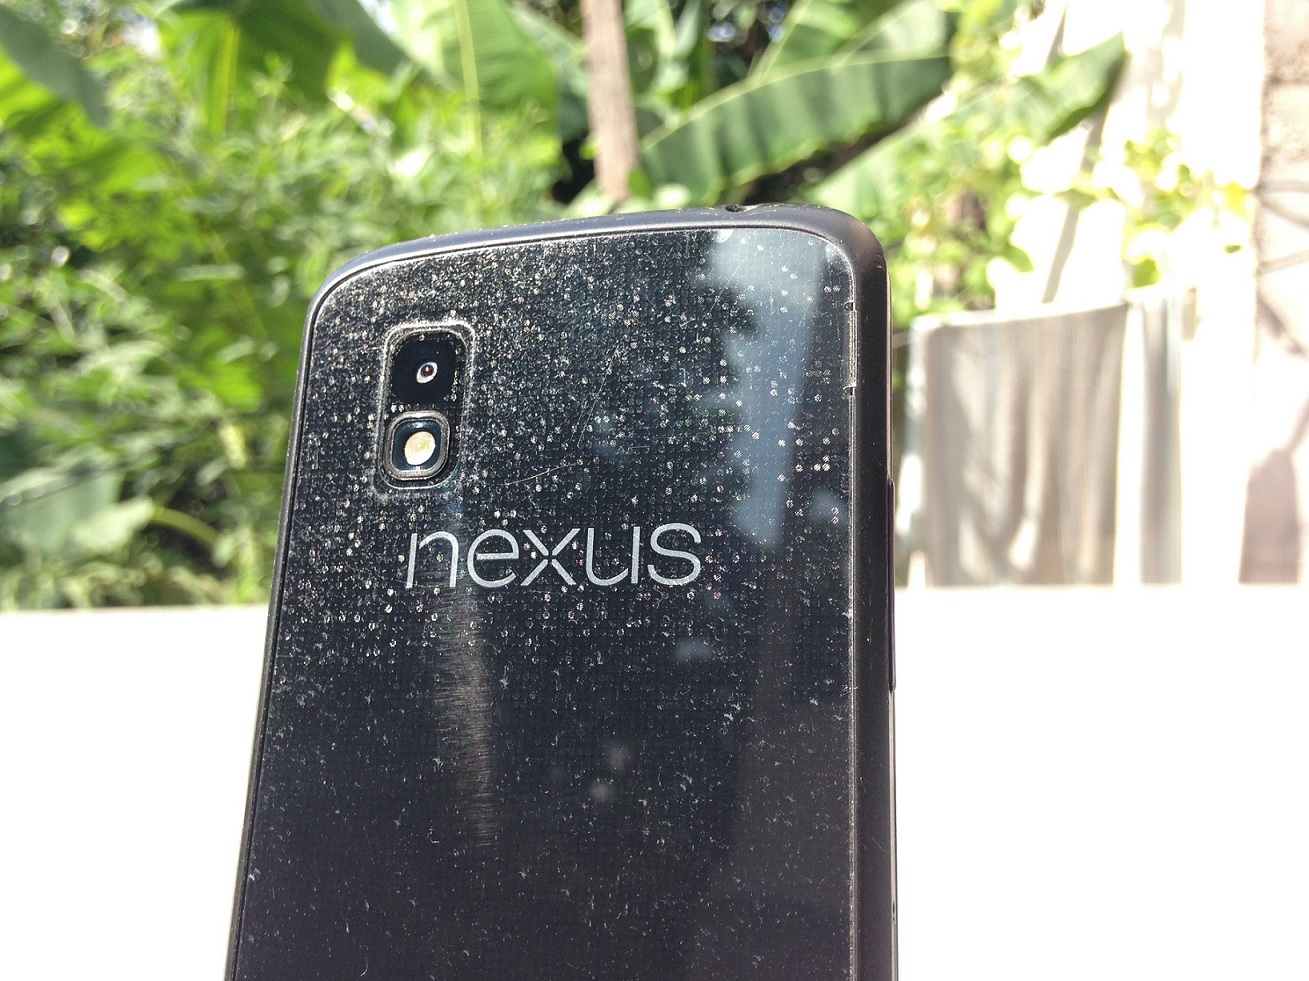 How to Root Nexus 4 on Android 6.0 Marshmallow